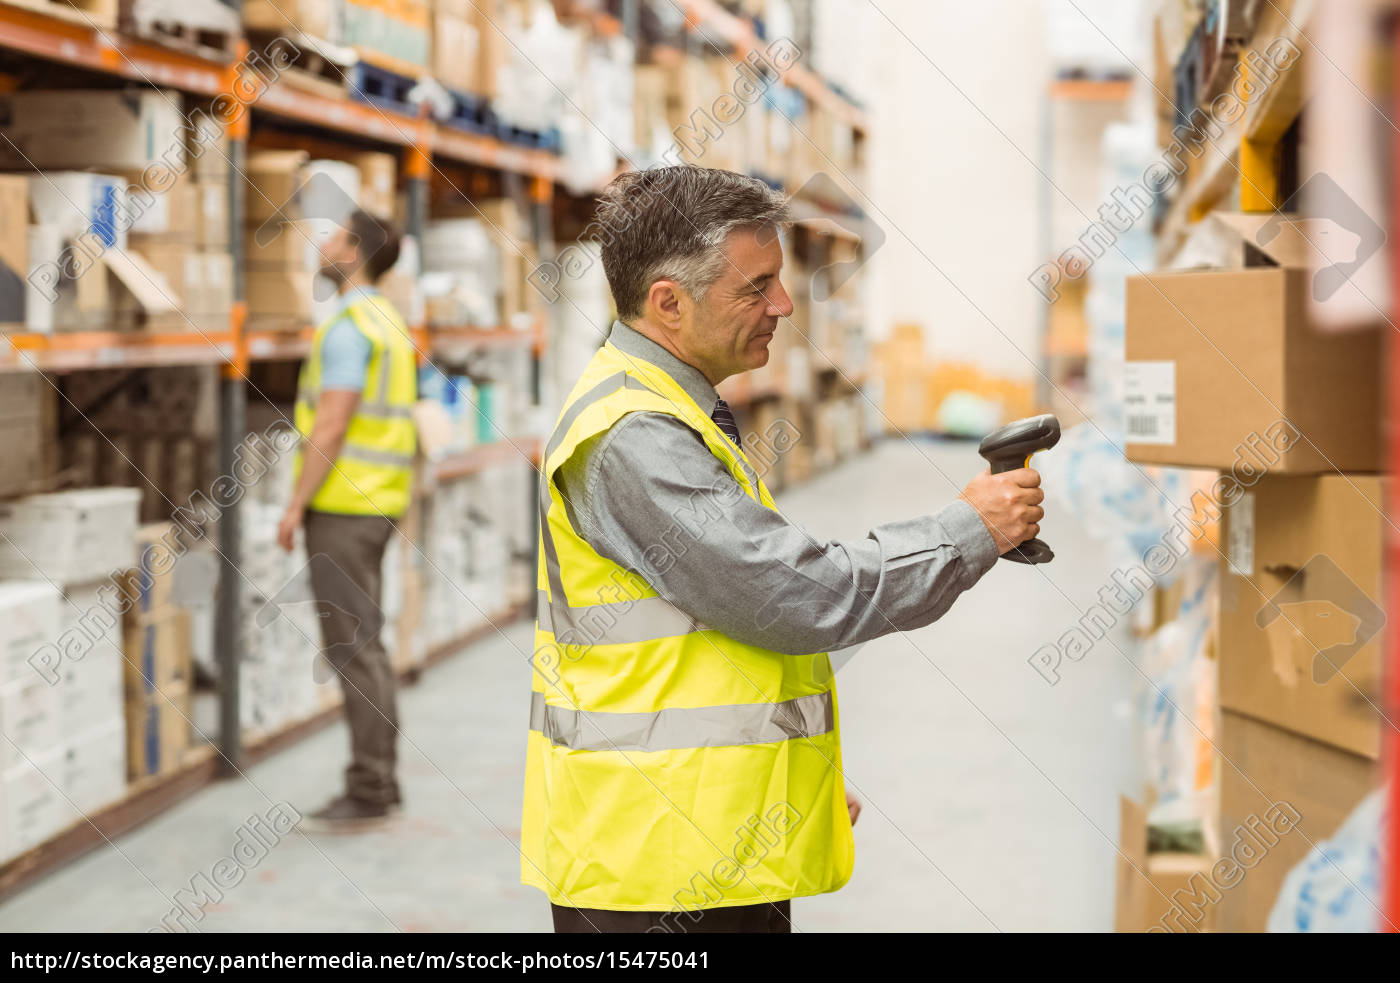 Royalty free image 15475041 - Warehouse worker scanning barcode on box